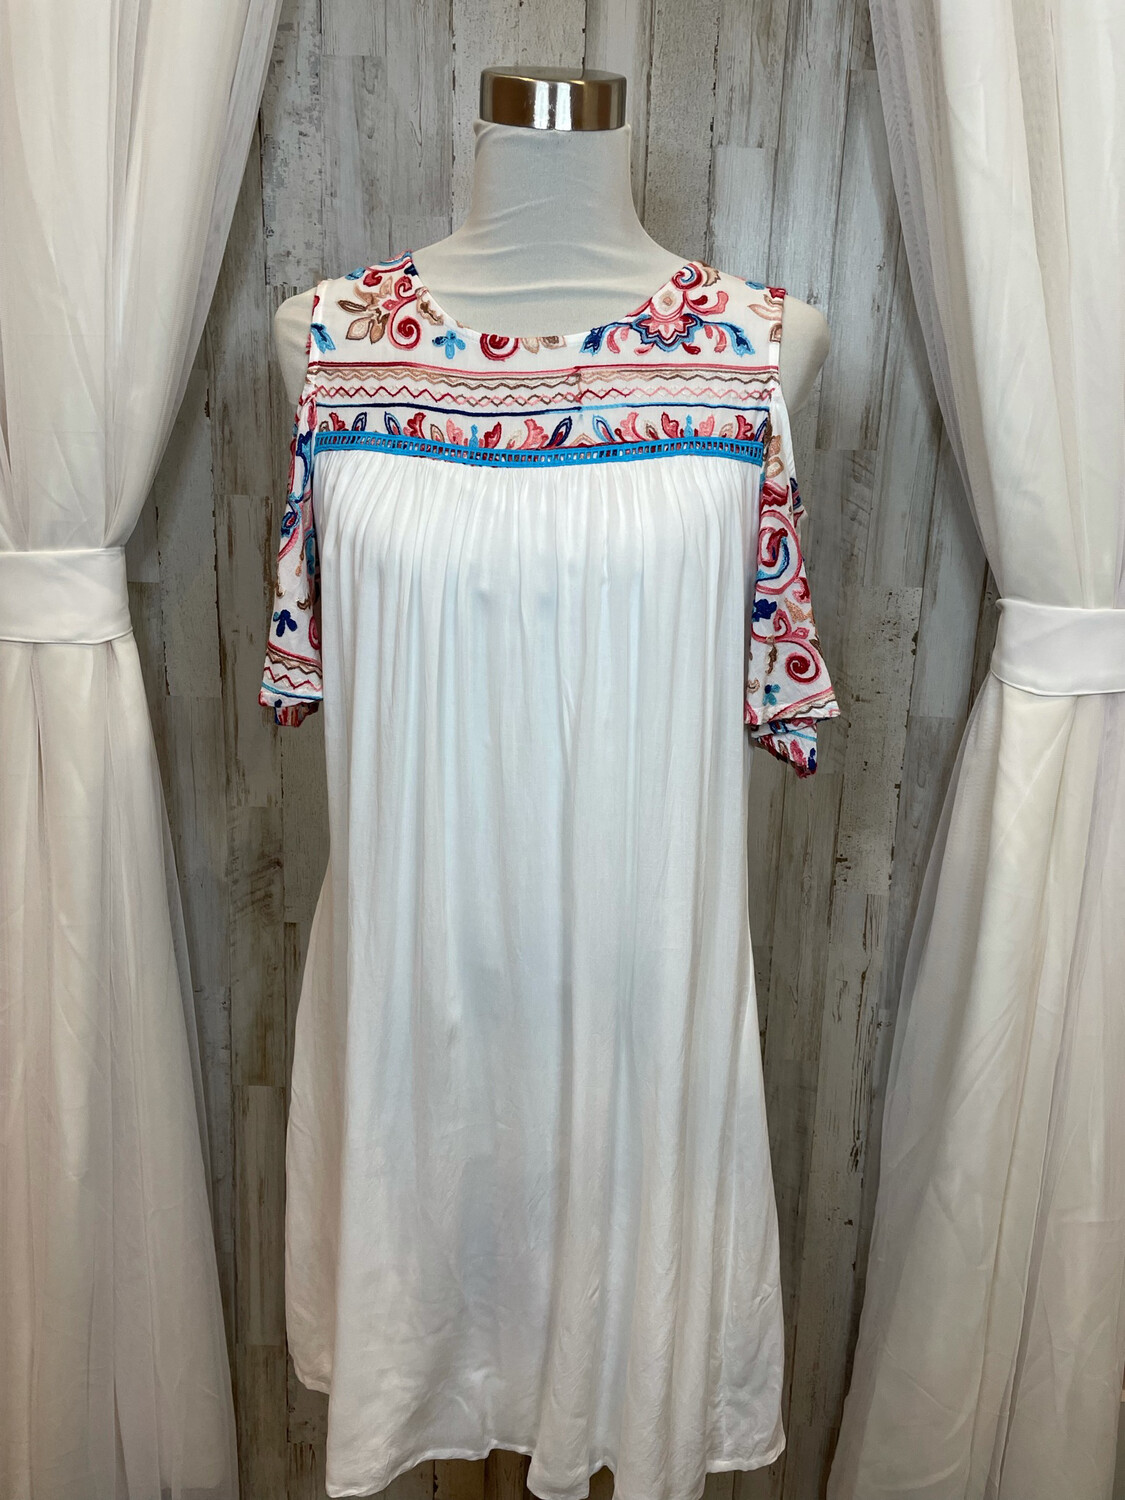 New Directions White Cold Shoulder Dress w/Floral Accent - M